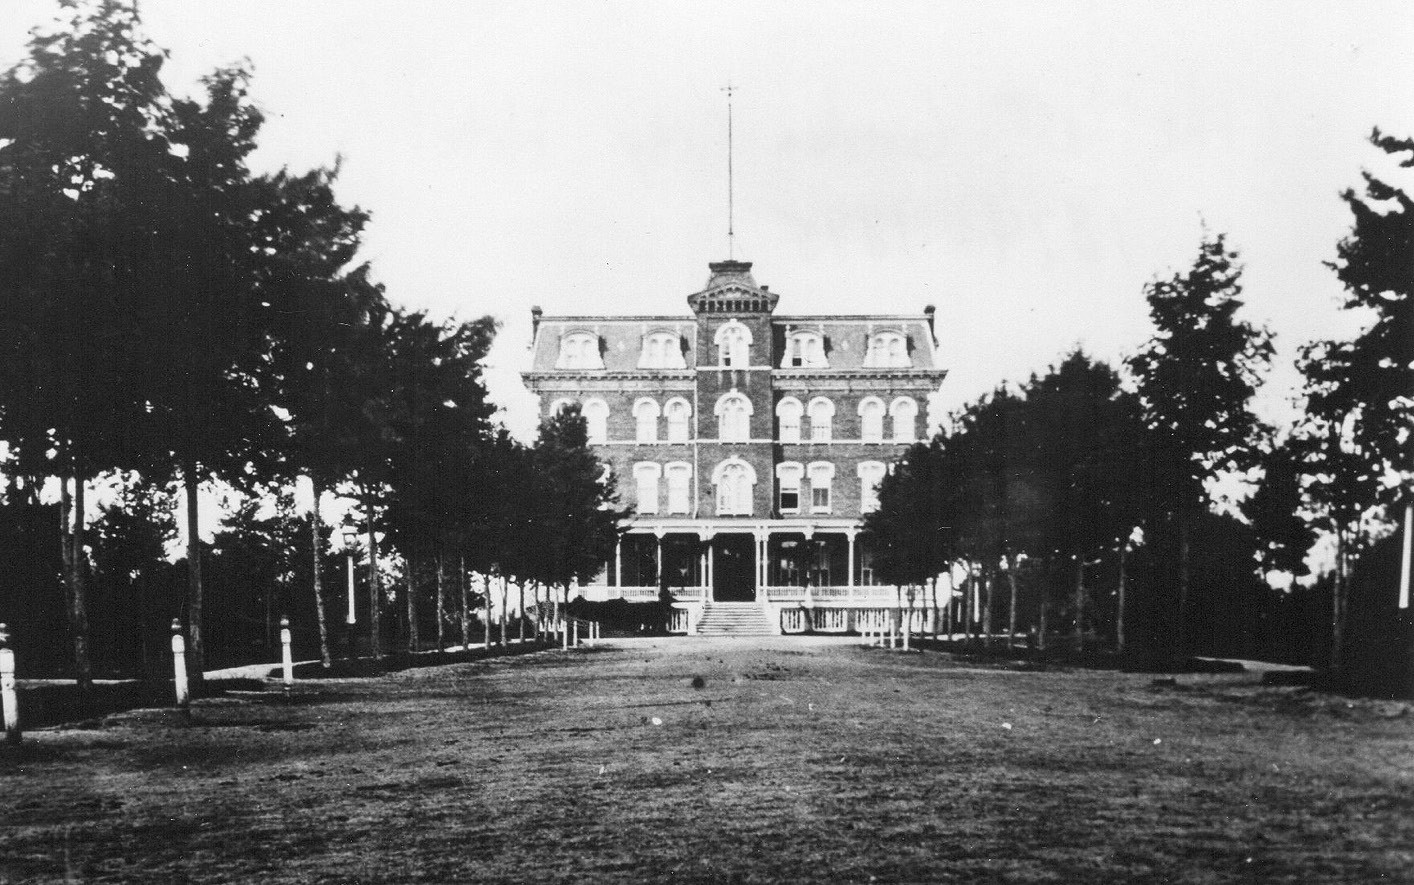 this is the first garden city hotel which opened in 1874 and lasted until 1895 the photo was taken from seventh street looking up what was then called park - The Garden City Hotel